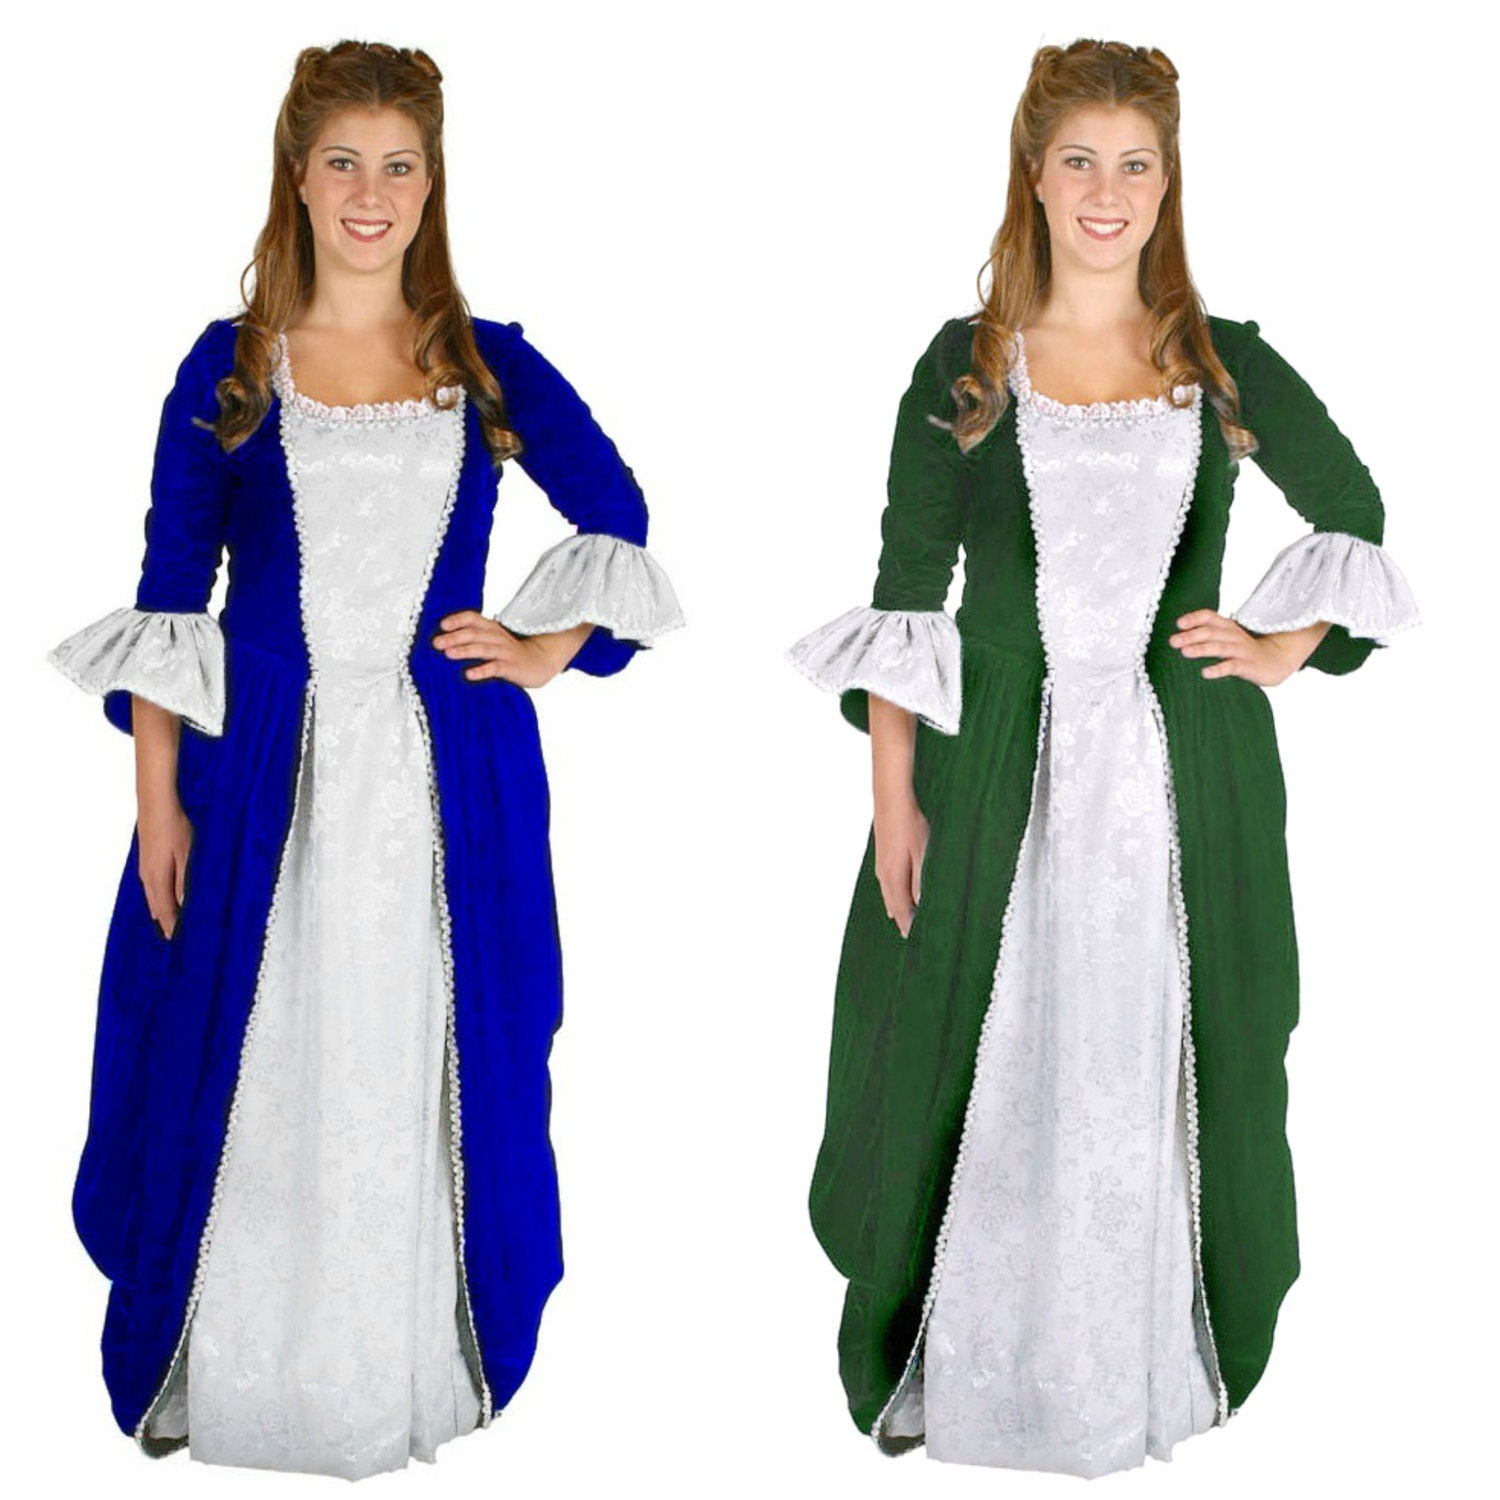 Christmas gown ideas 18th - Women S Adult Colonial Lady Dress Colonial Costumes For Women 1700s 18th Century Period